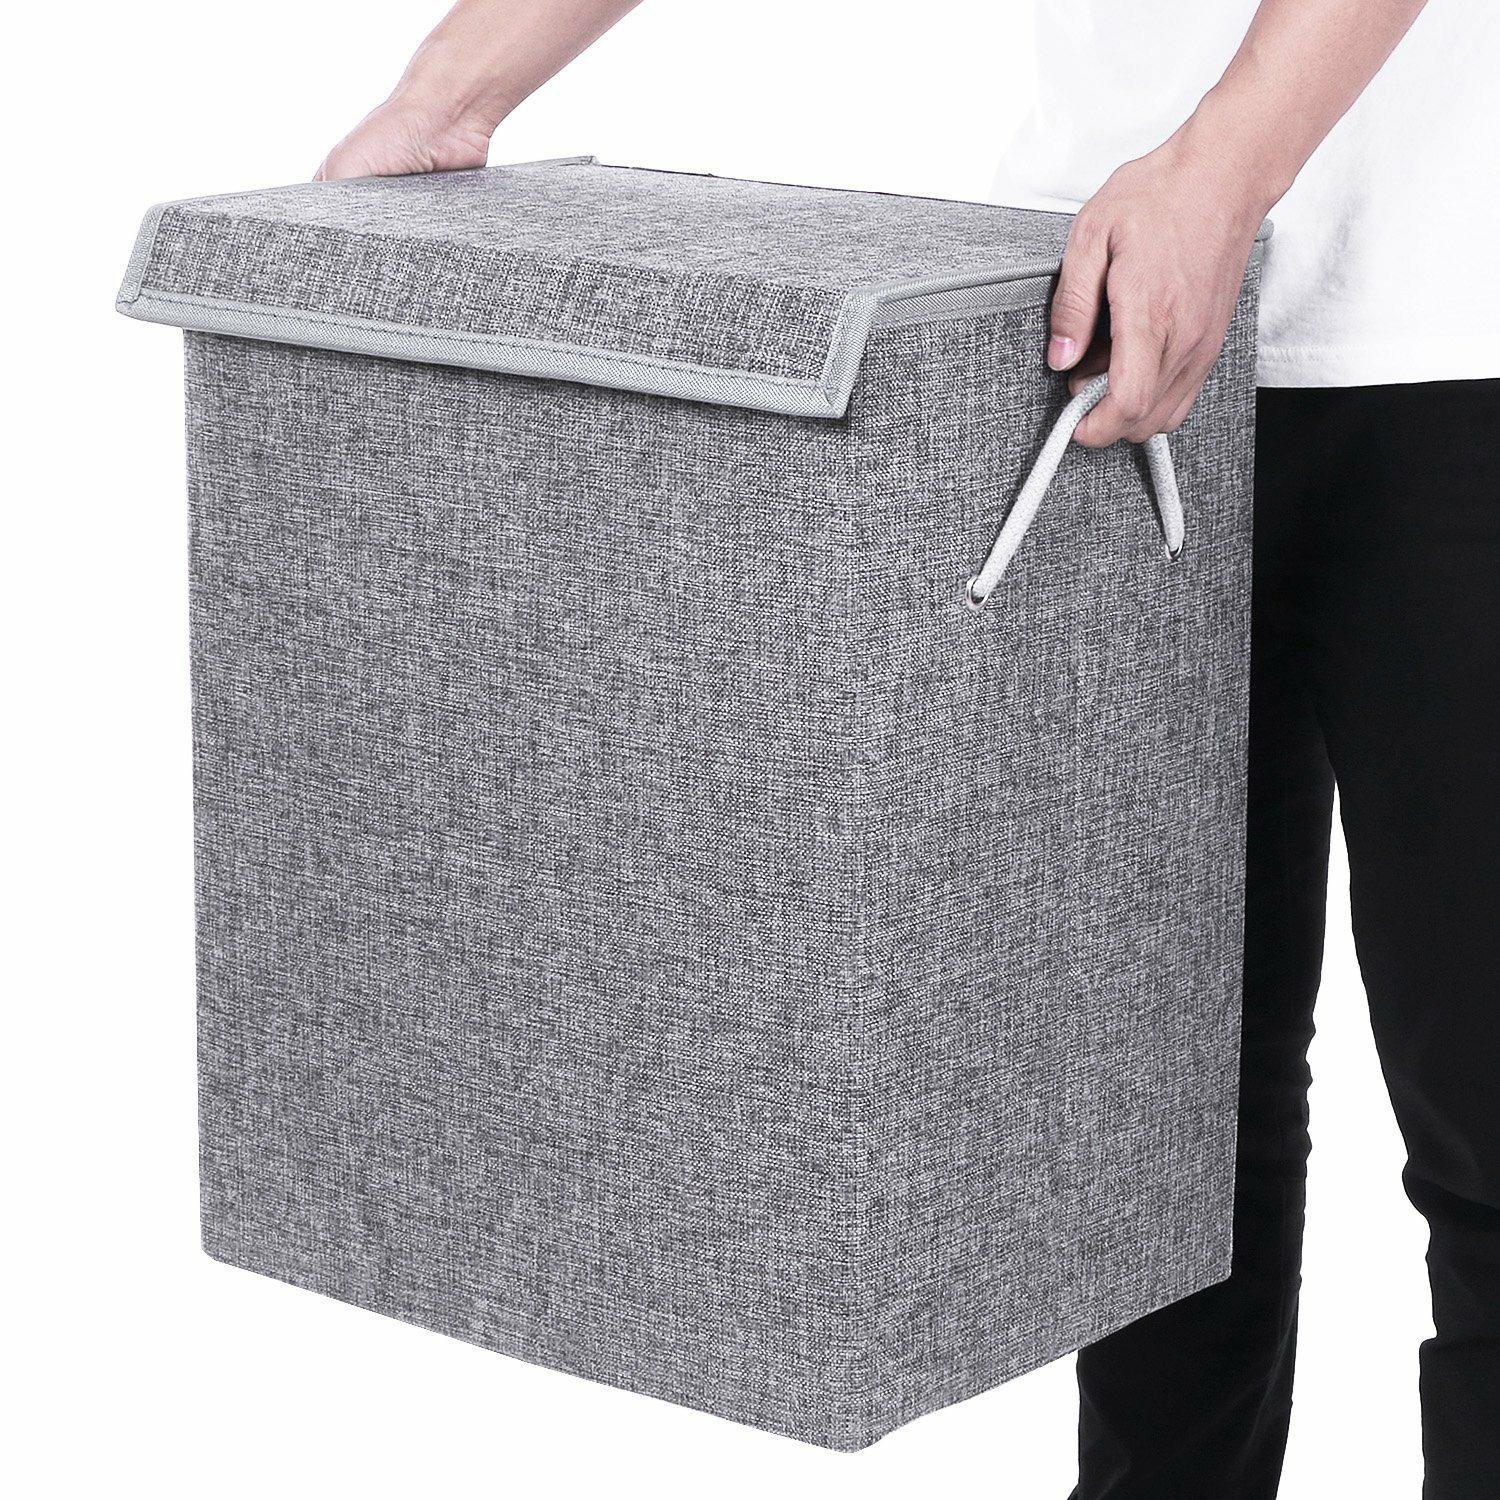 BEWISHOME Foldable Laundry Hamper,Large Laundry Basket Storage Bin for Clothes,Dirty Clothes Hamper w/Lids/Velcro,Grey Hamper with Removable liners & Sturdy Handles Grey YYL01G by BEWISHOME (Image #6)